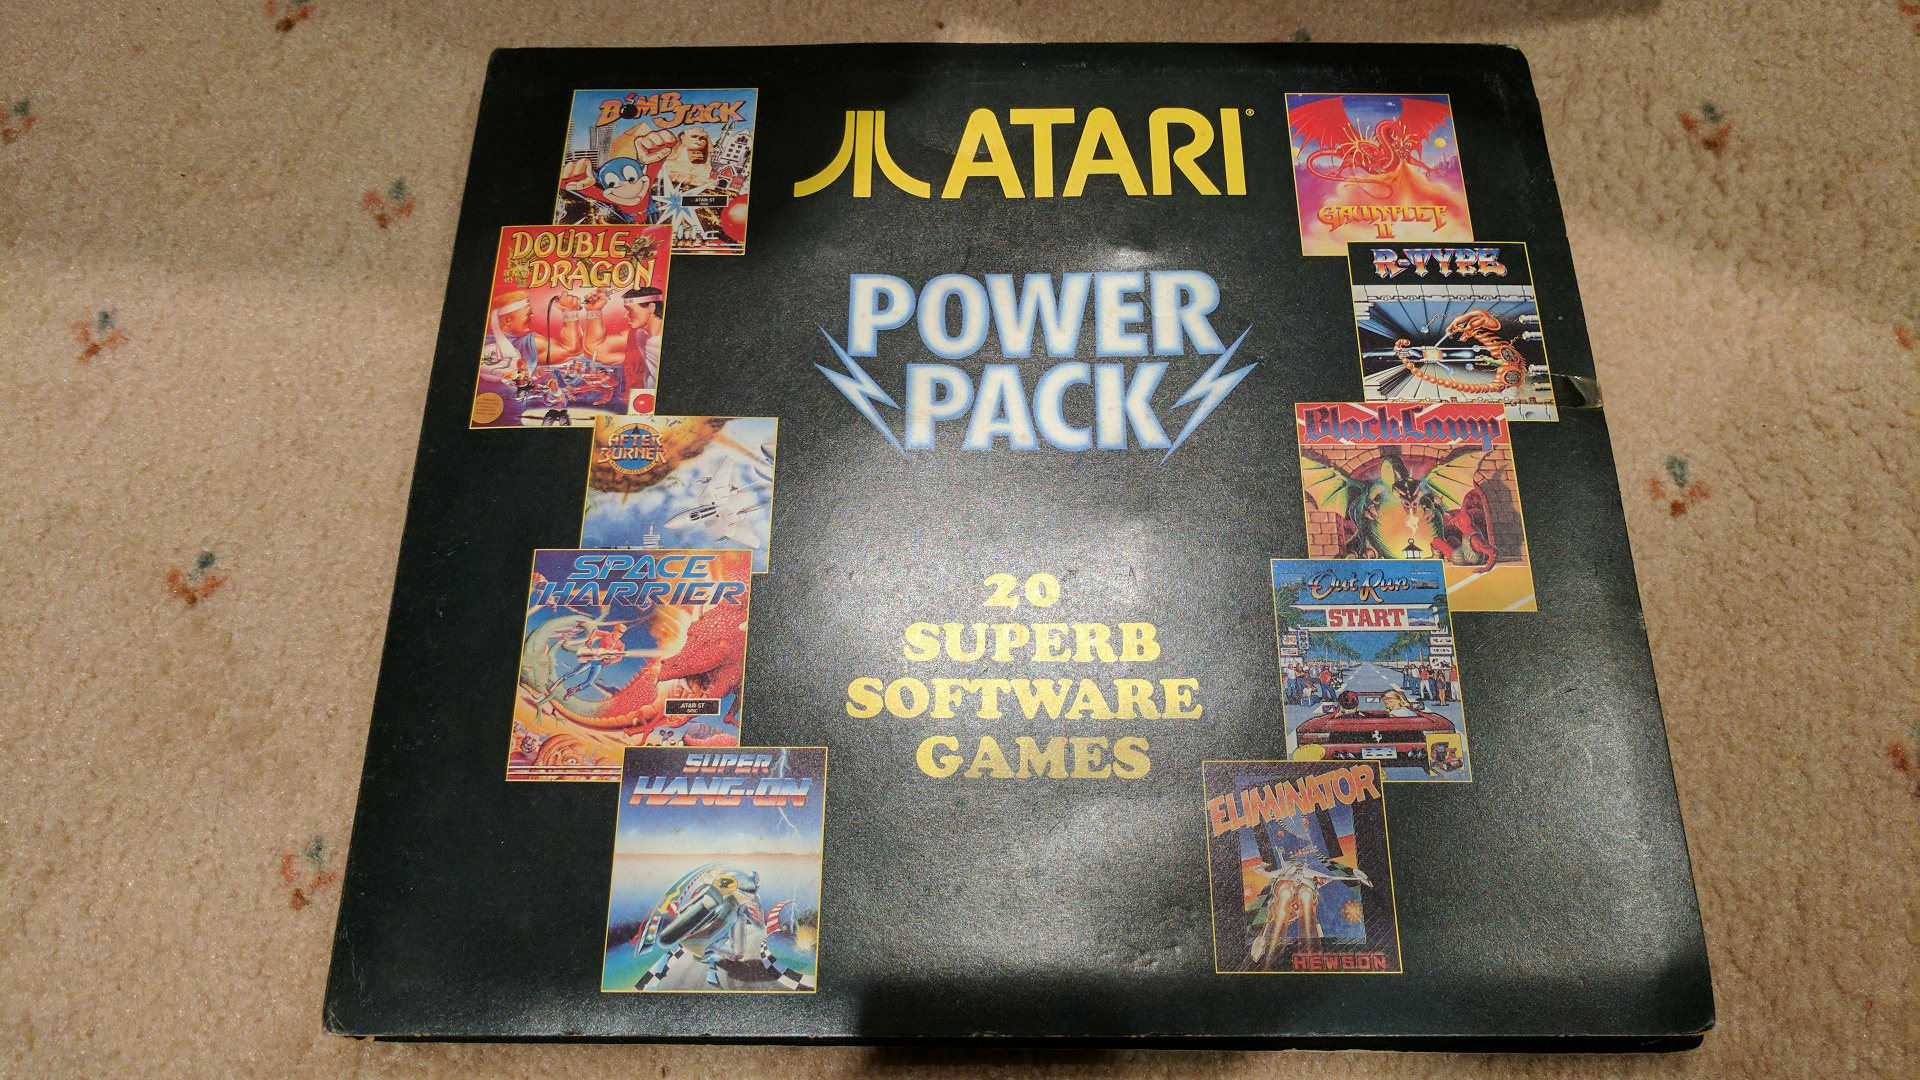 Checking out the Atari ST's Power Pack – The Late Night Session